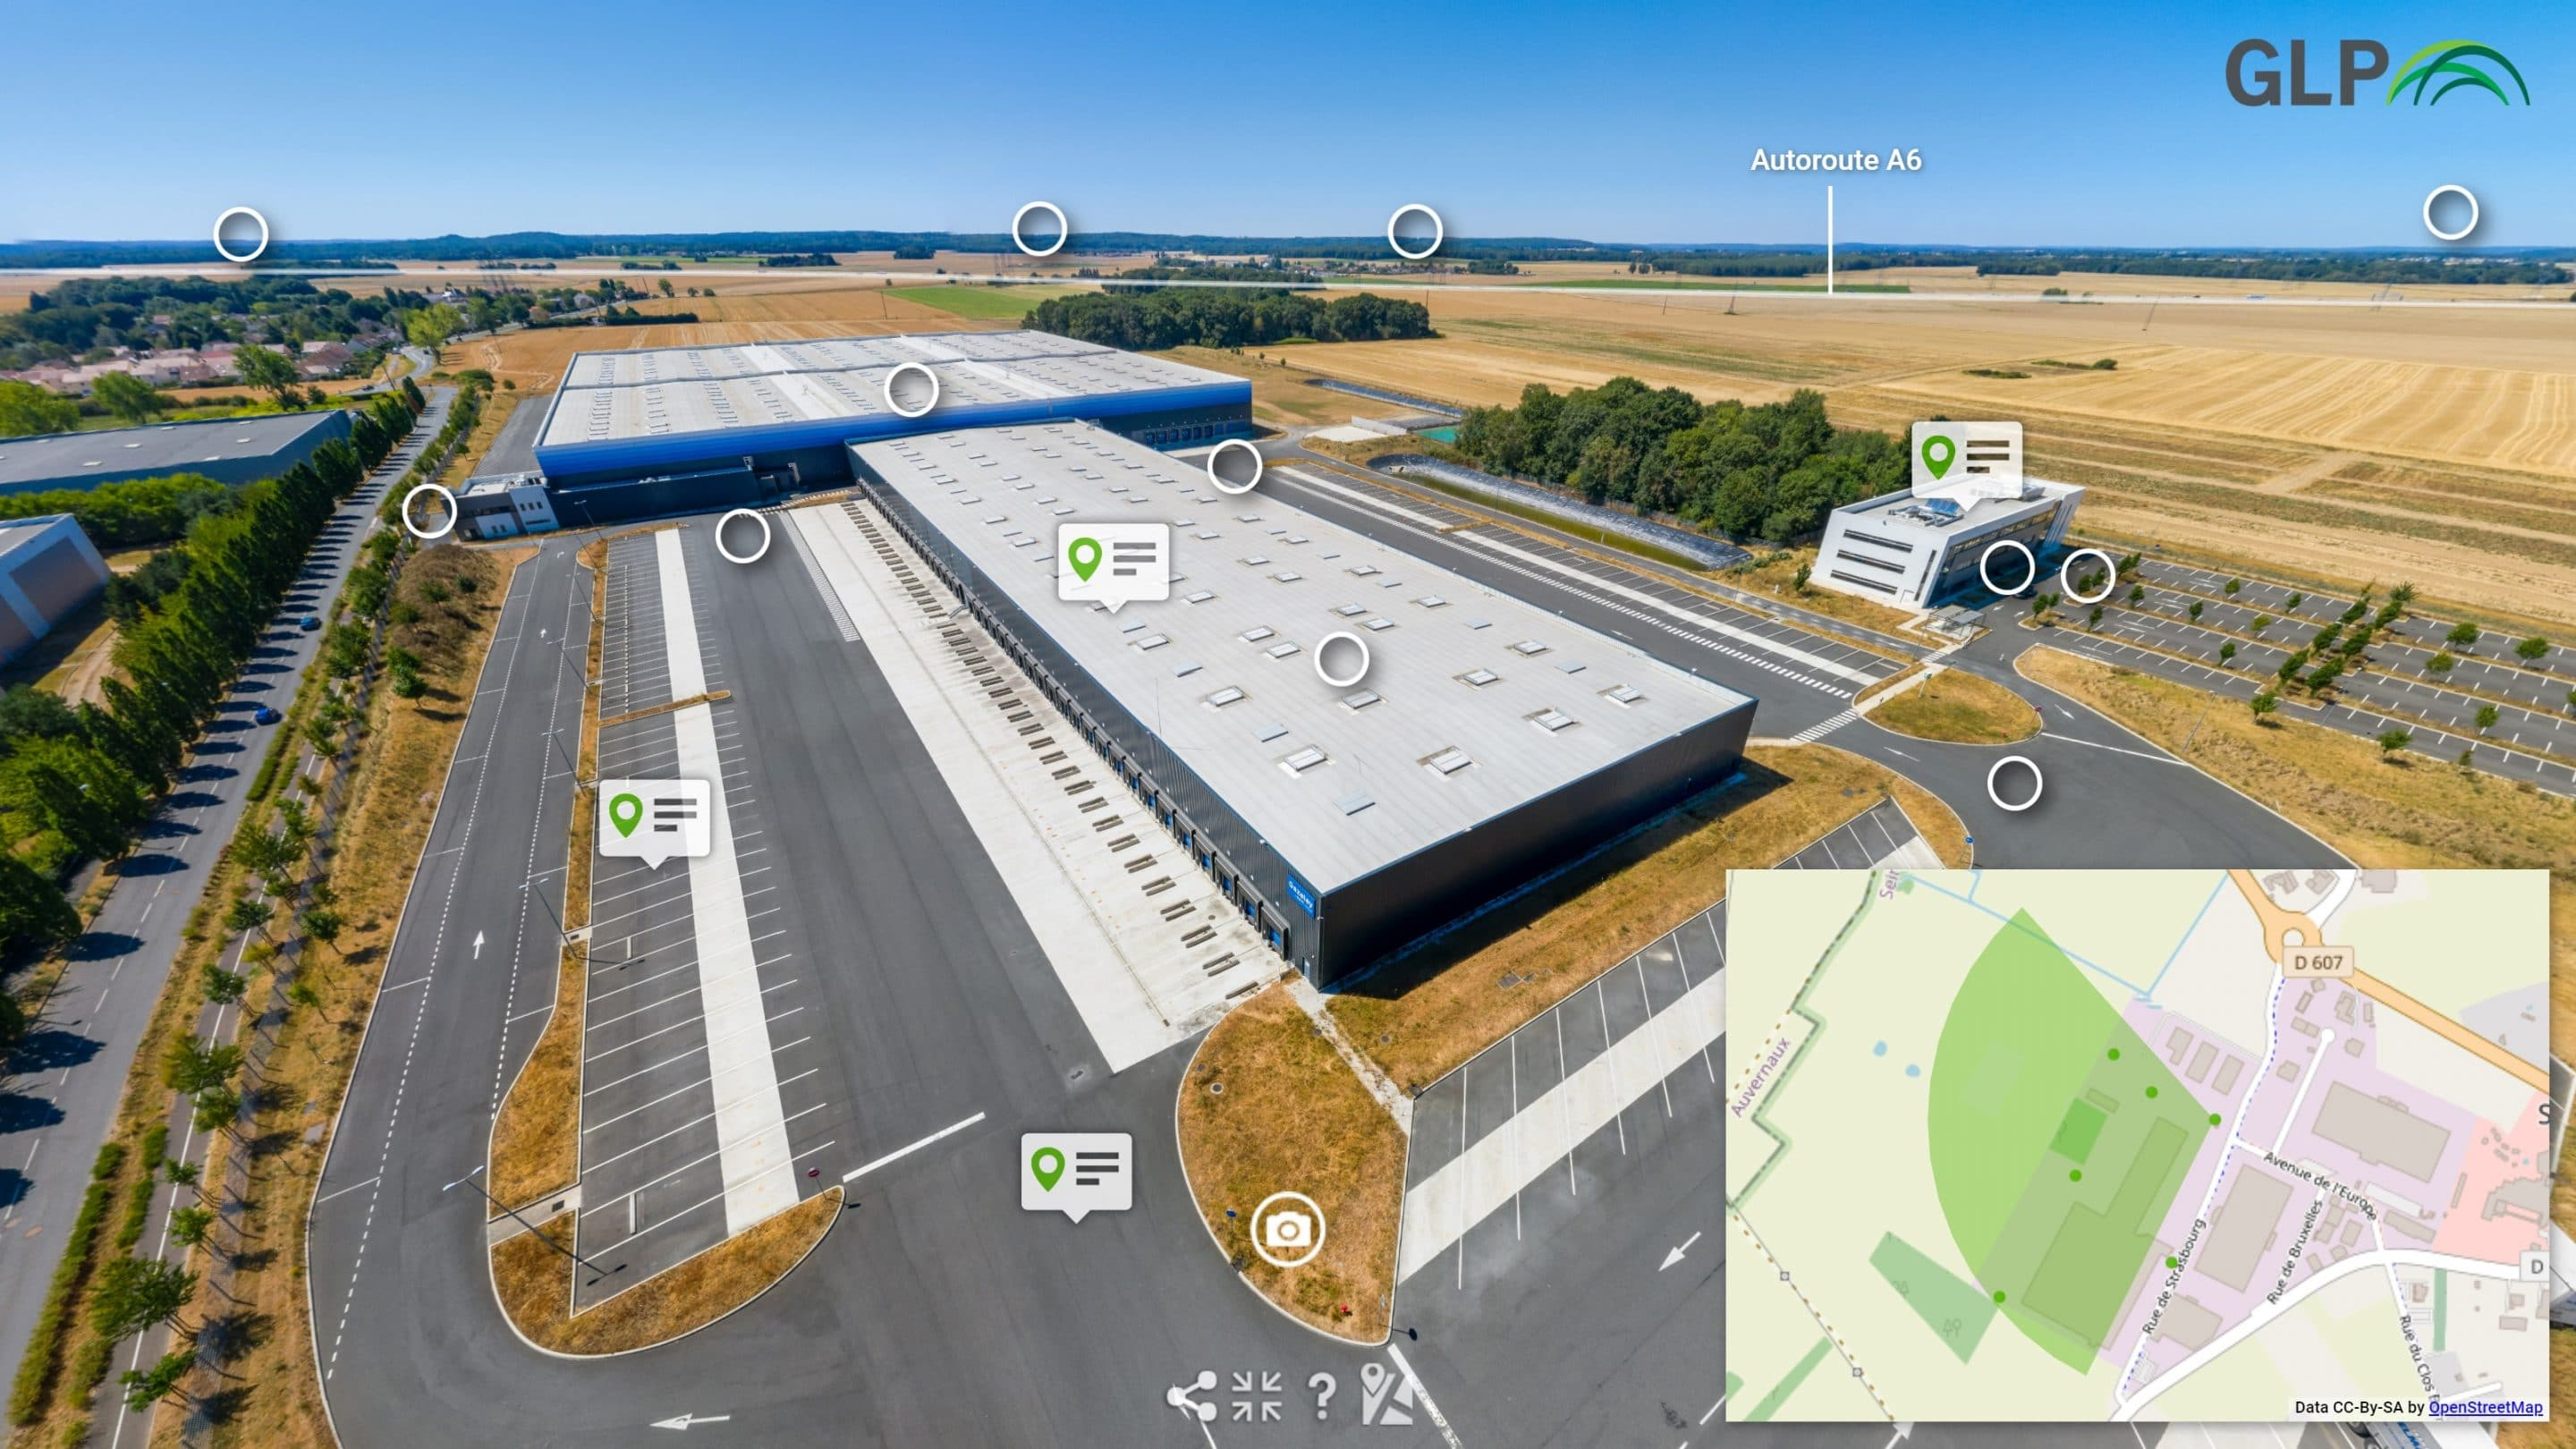 visite 360 drone scaled